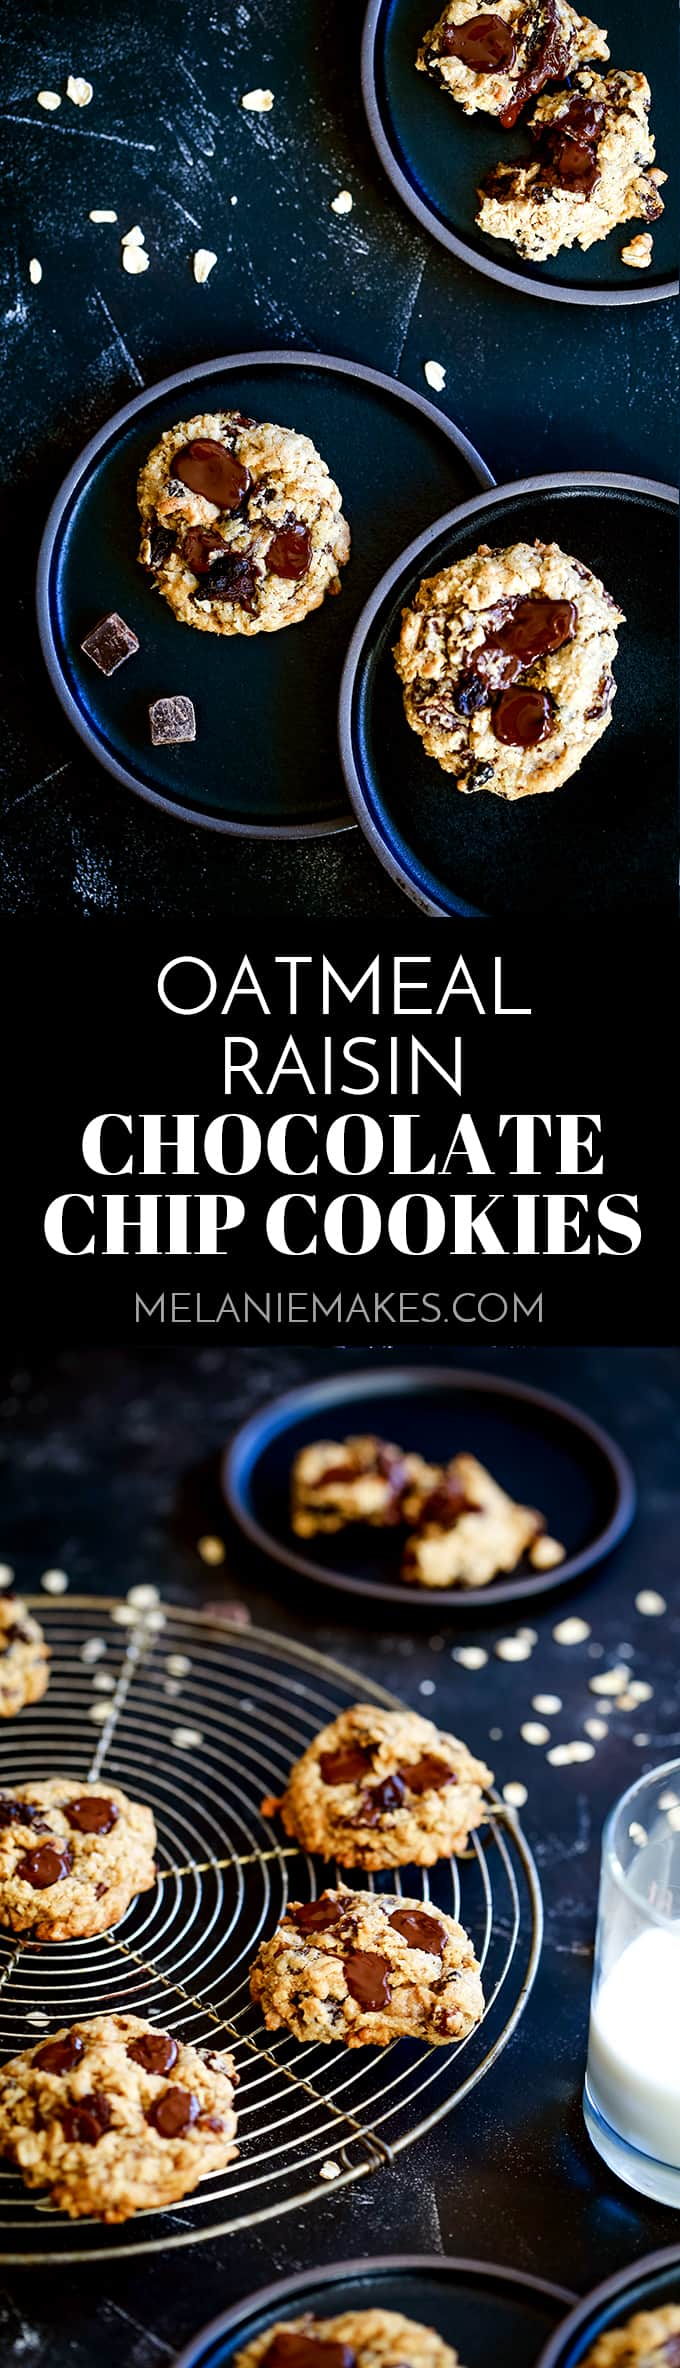 These Oatmeal Raisin Chocolate Chip Cookies won't last long in your cookie jar!  Oats, raisins and dark chocolate chips bedazzle this soft and chewy delight and make them absolutely addicting.